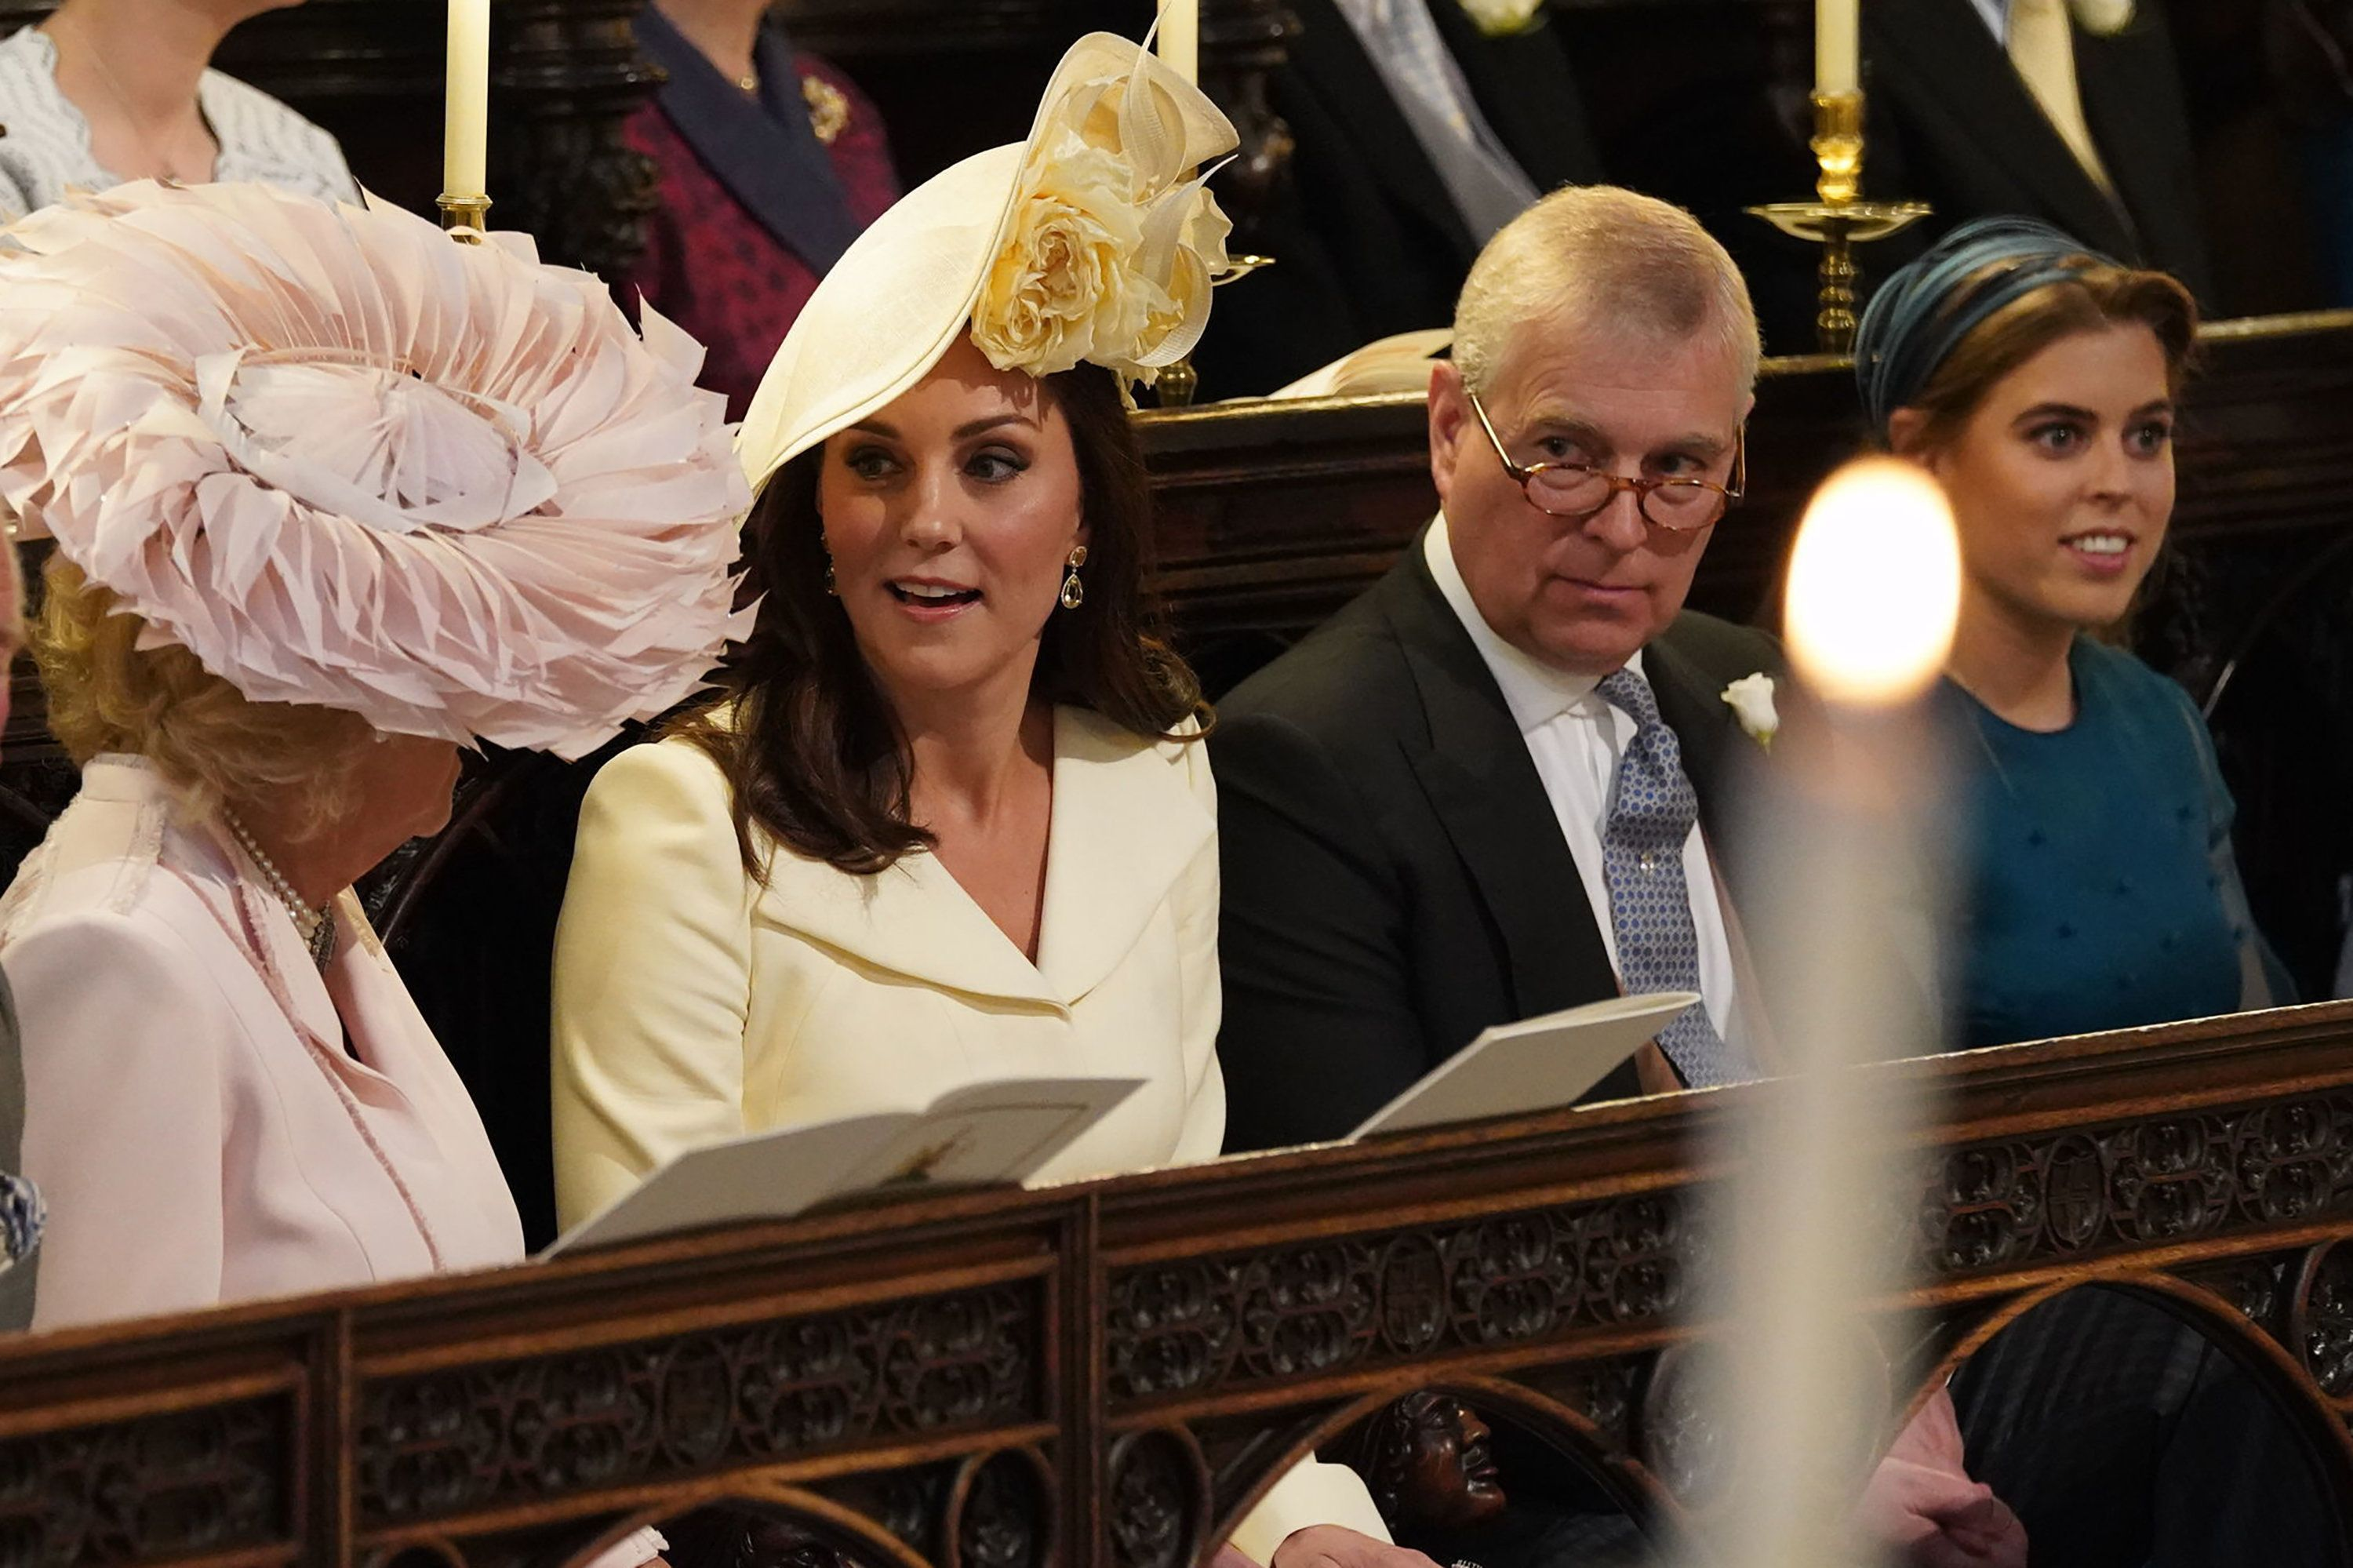 The Duchess Of Cambridge's Royal Wedding Outfit Is Classic And